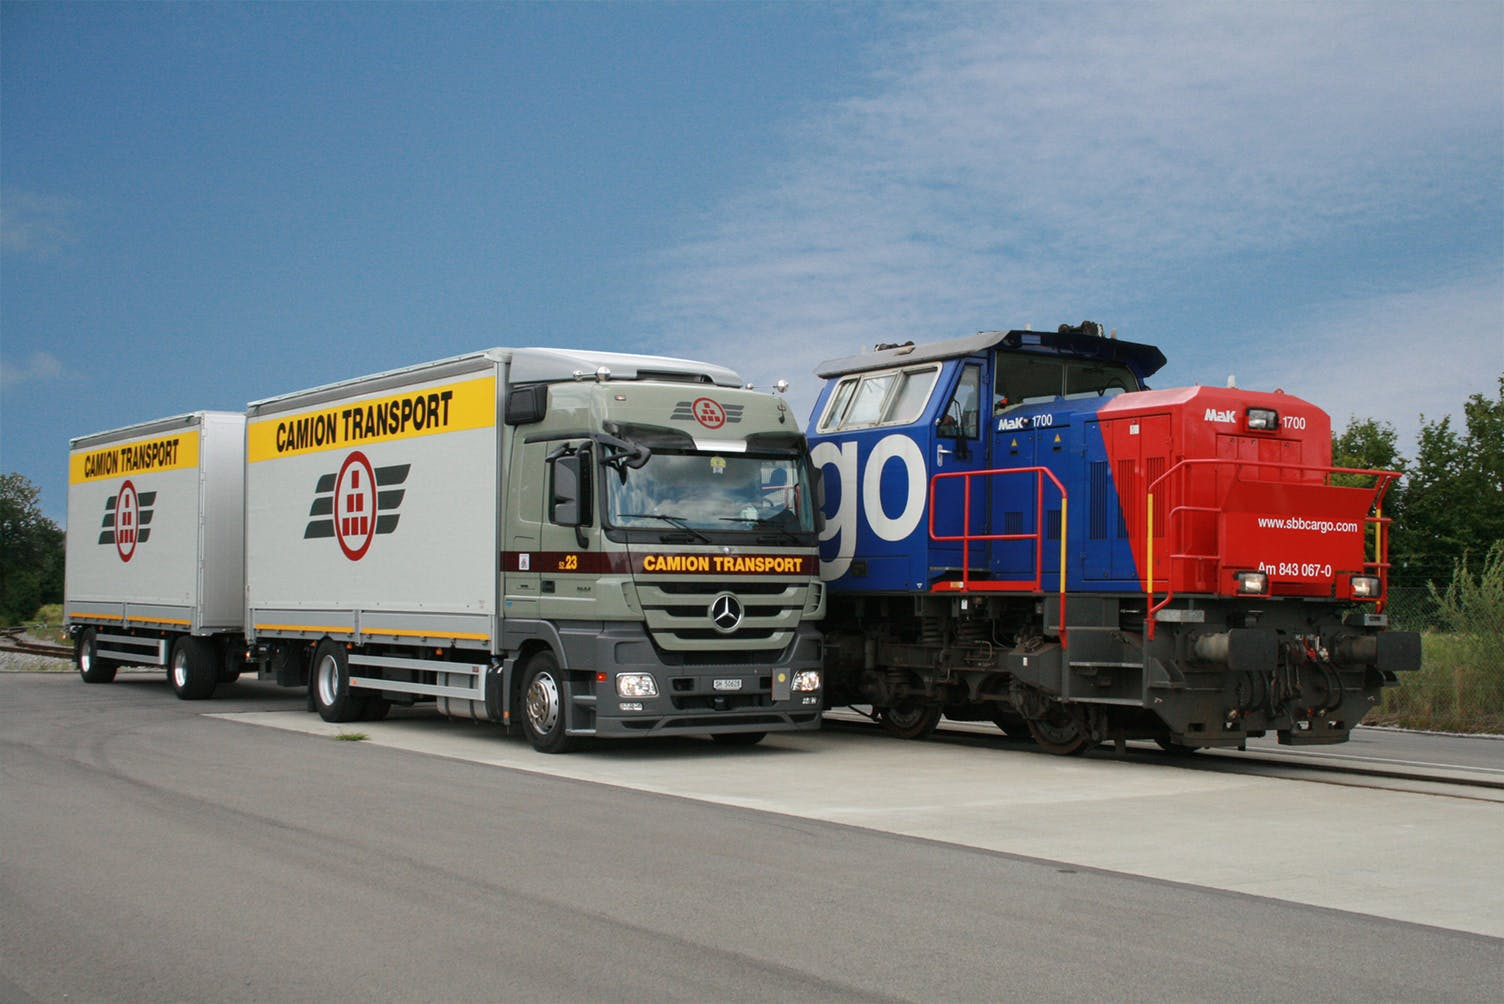 Camion is one of two 40% stakeholders in Swiss Combi